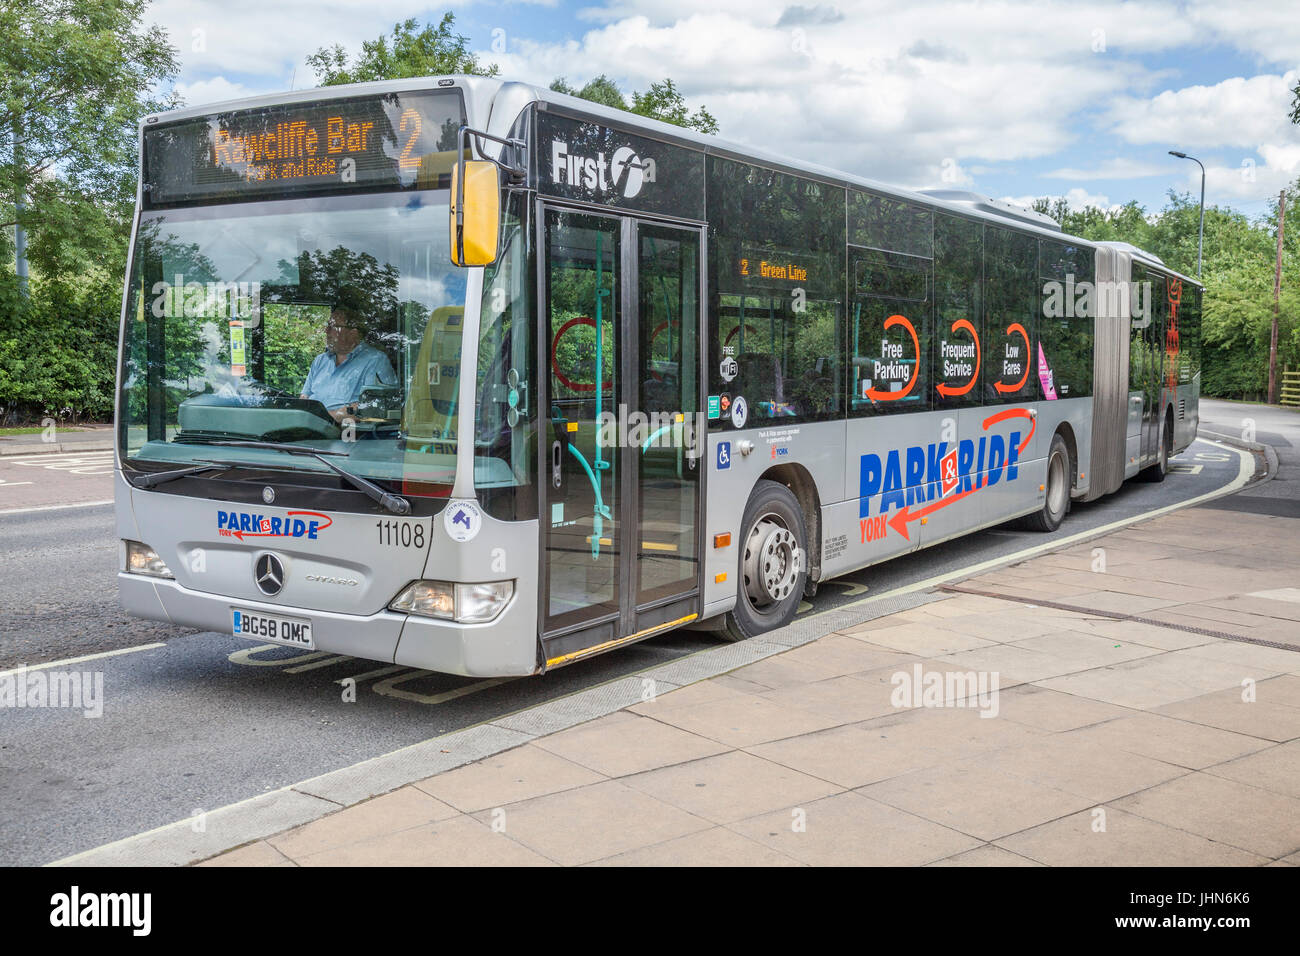 Buses parked up at the Park and Ride at Rawcliffe Bar, York,England,UK - Stock Image